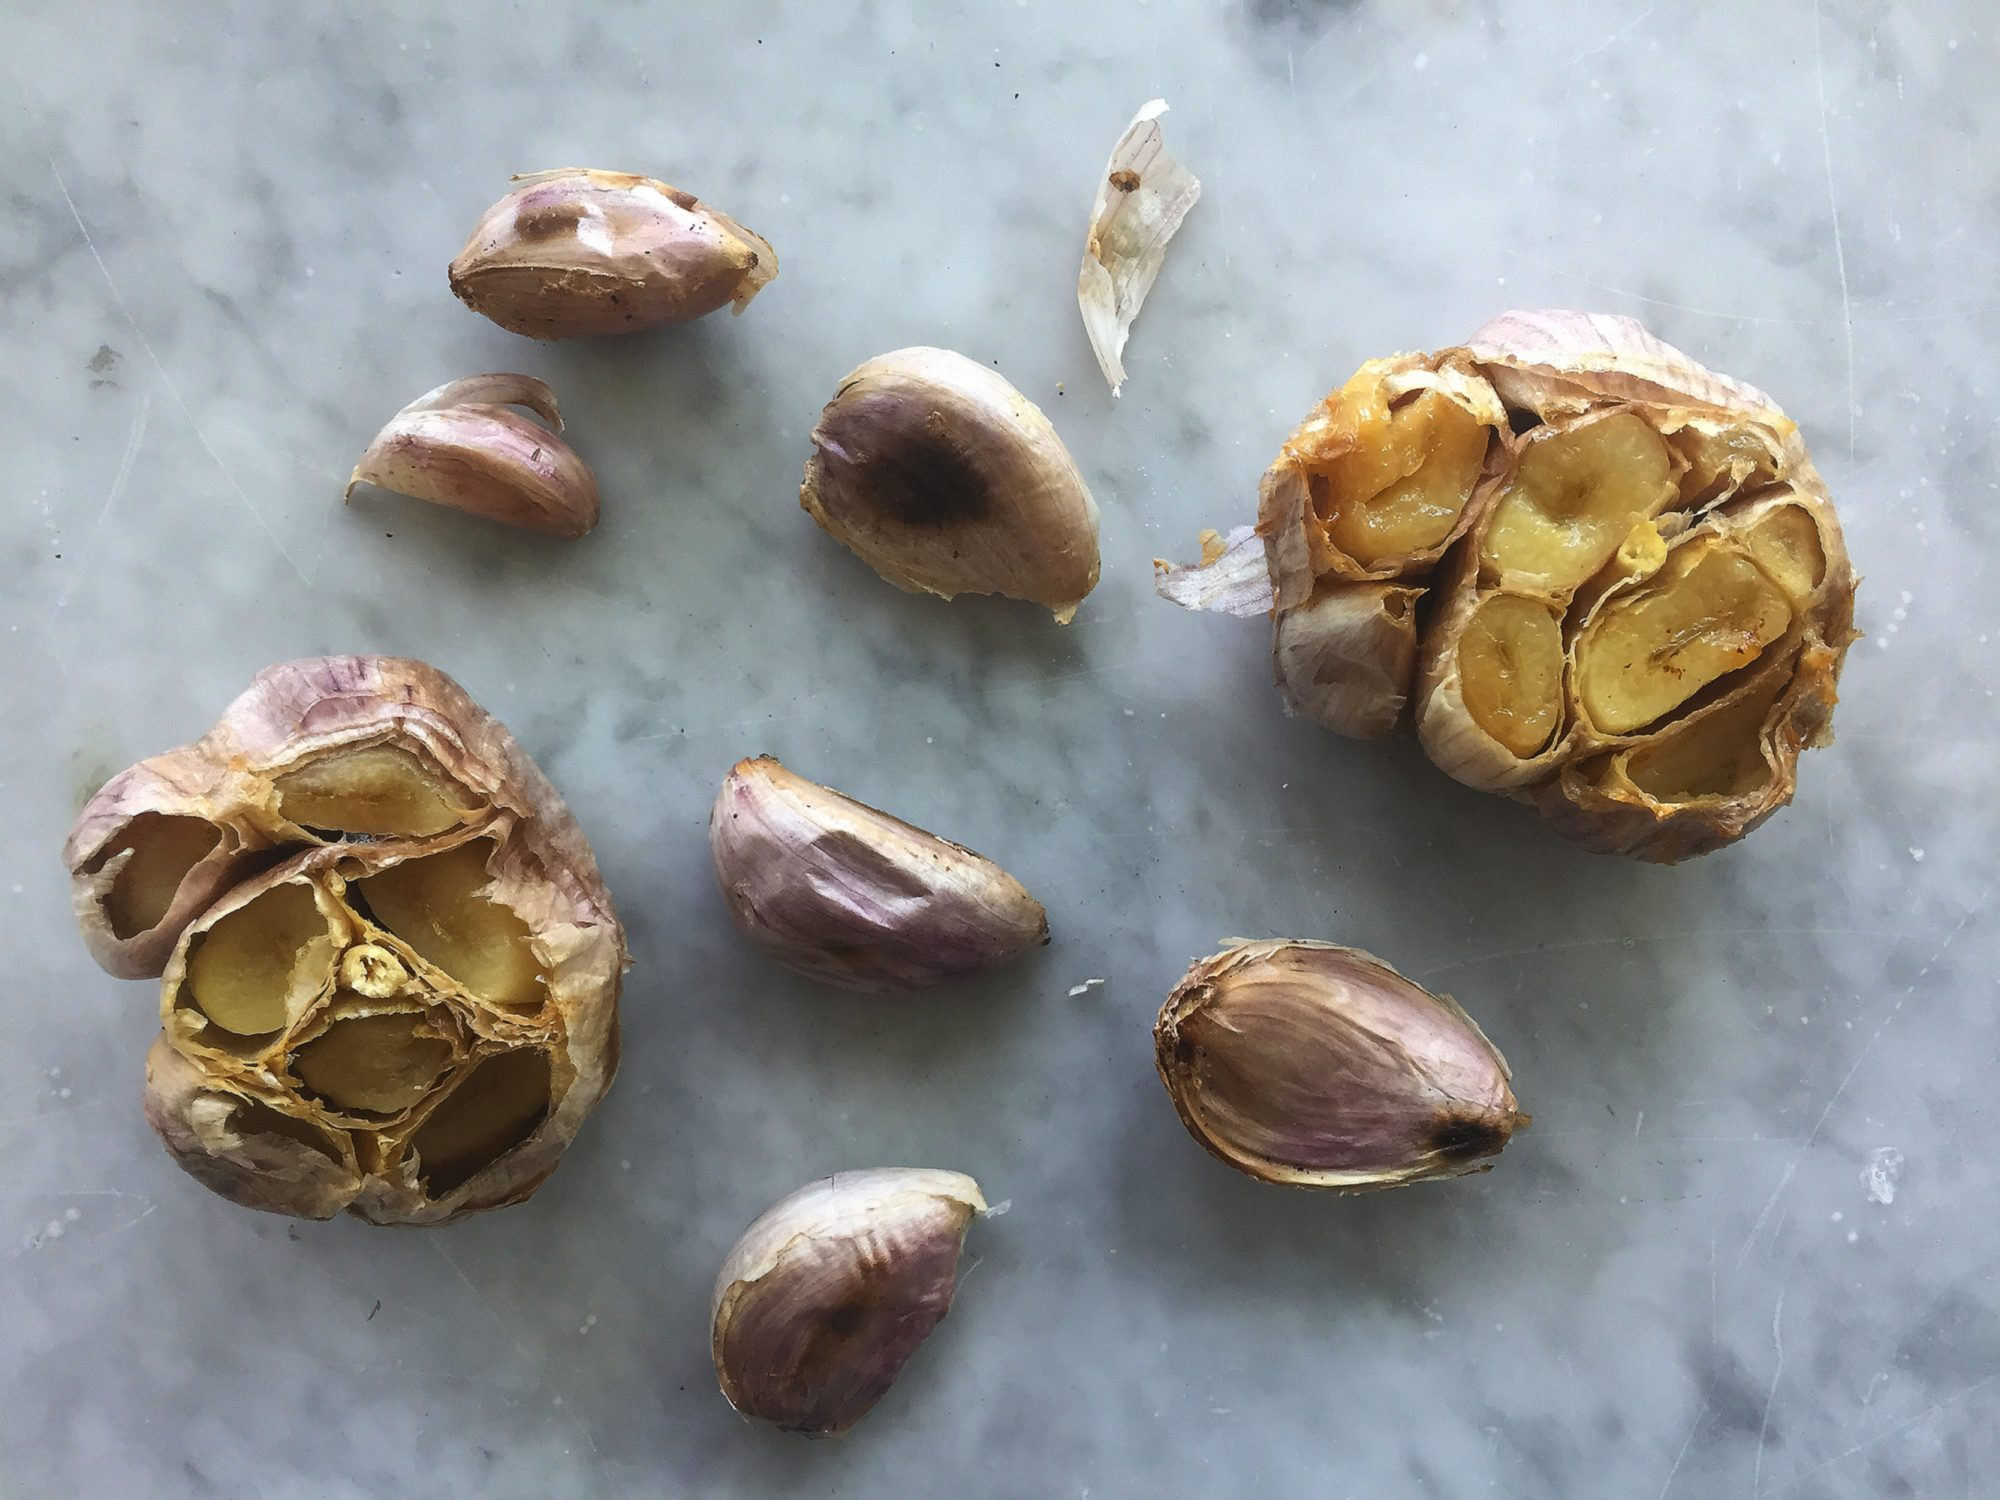 3 easy ways to roast garlic in the oven.